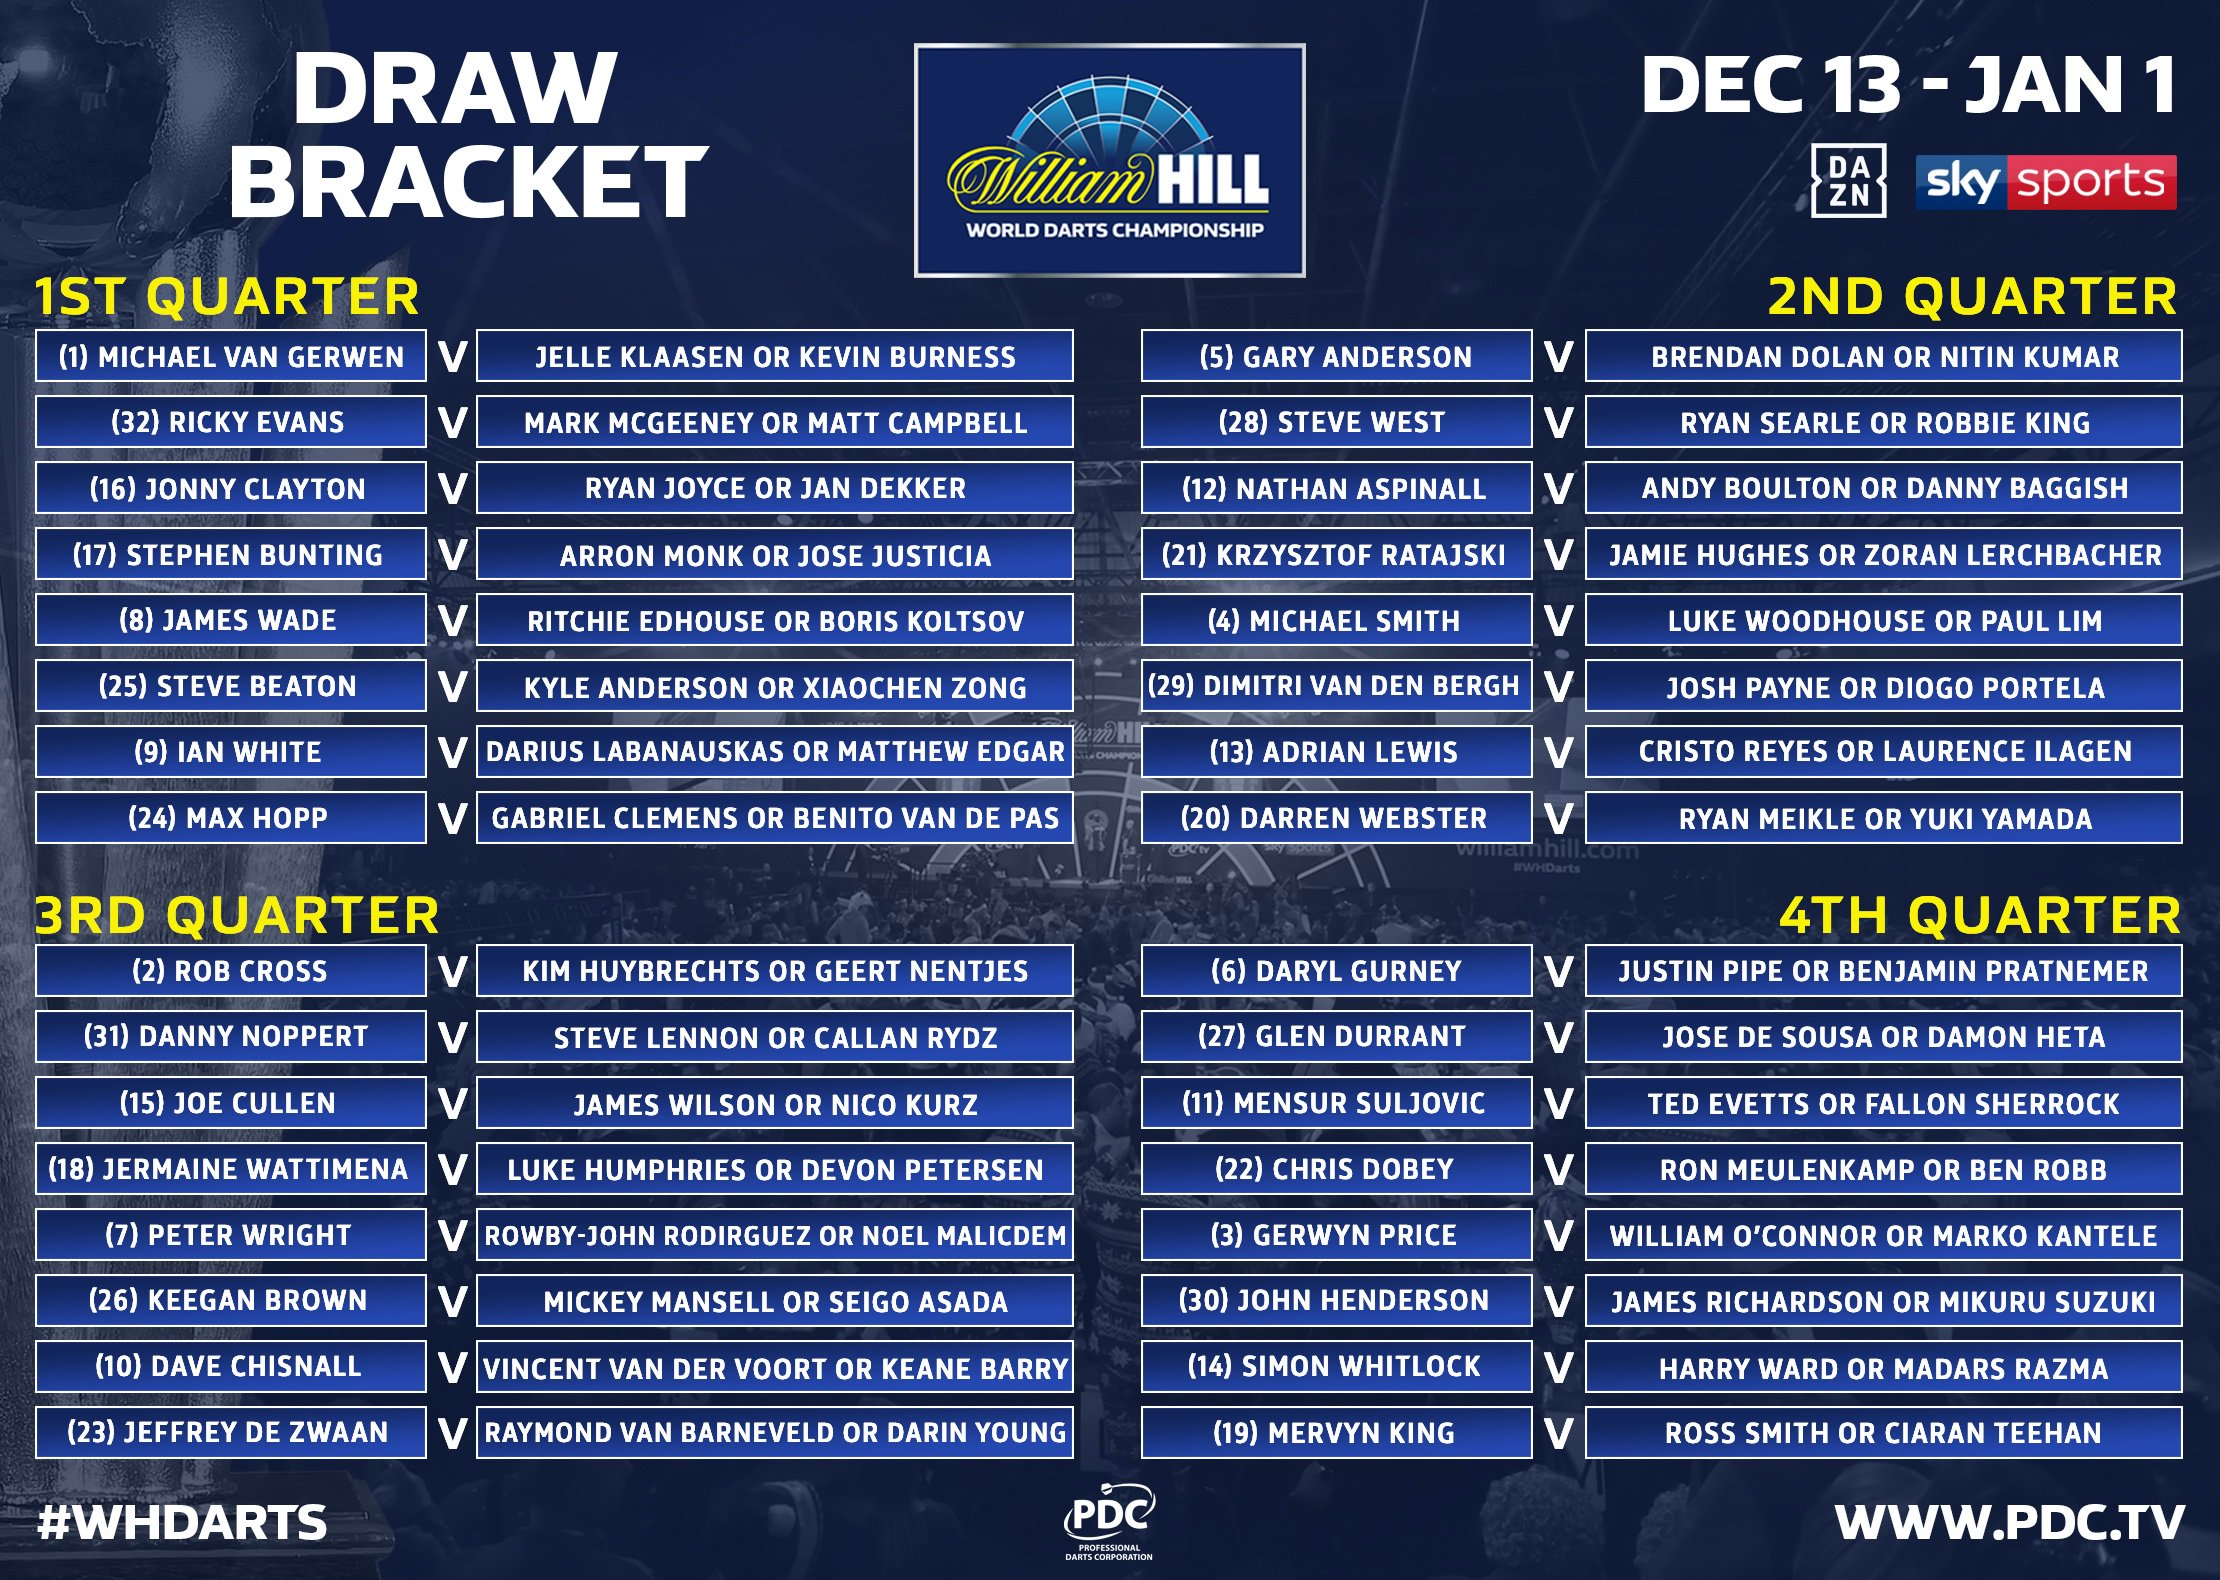 World Championship draw bracket (PDC)